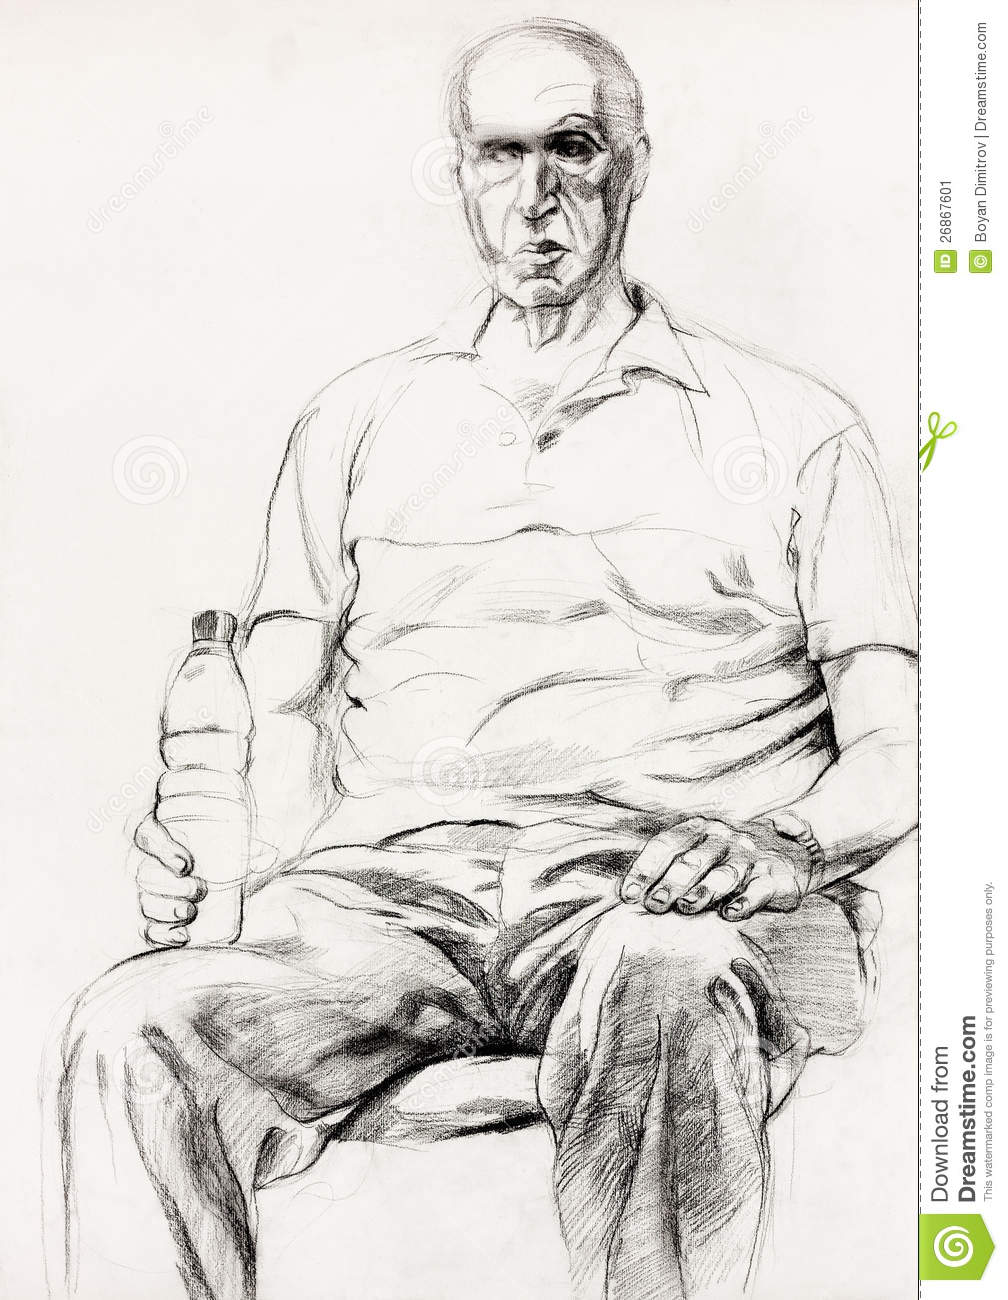 Man sitting sketch stock illustration. Illustration of